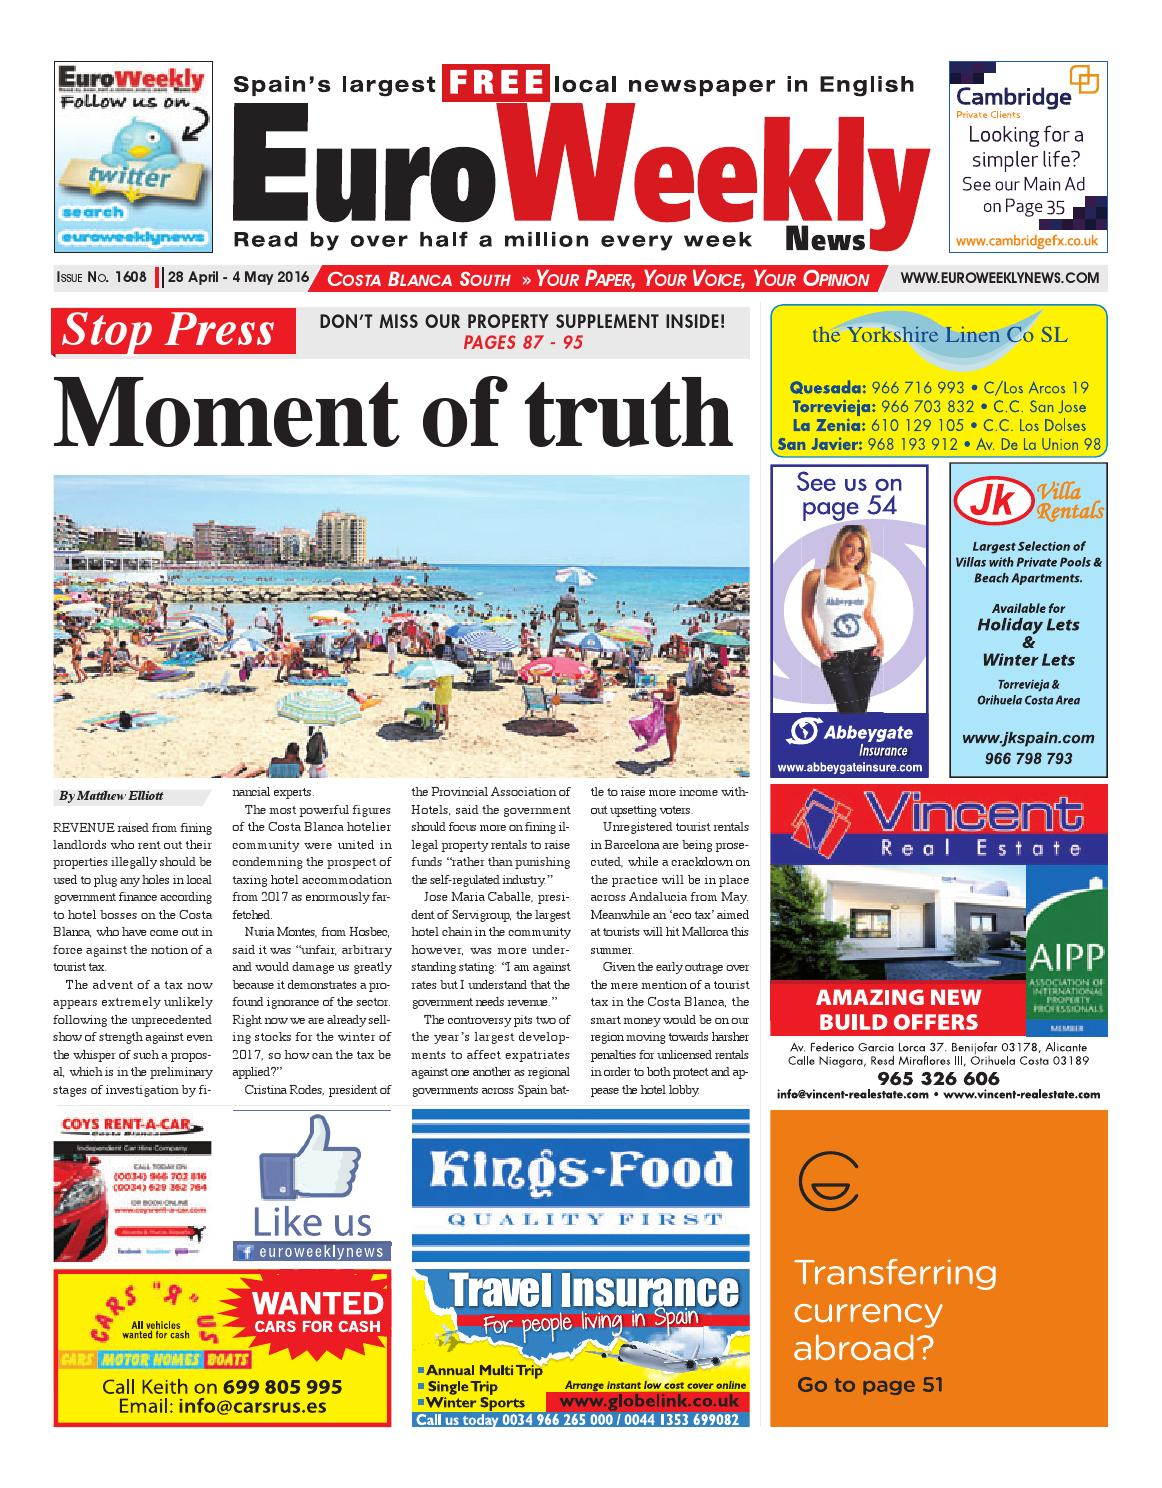 Euro weekly news costa blanca south 28 april 4 may 2016 issue euro weekly news costa blanca south 28 april 4 may 2016 issue 1608 by euro weekly news media sa issuu fandeluxe Image collections